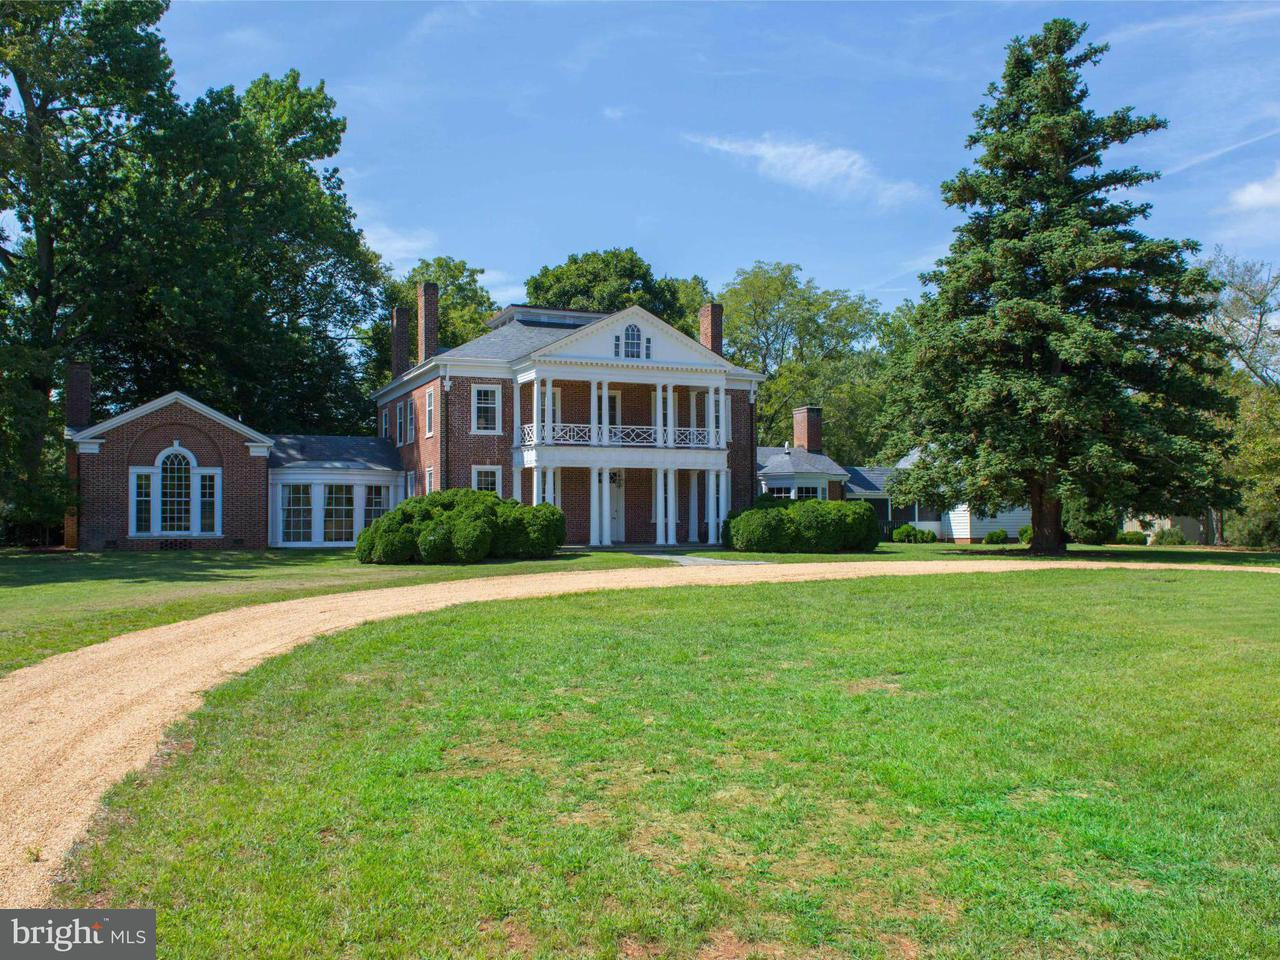 Farm for Sale at 7369 DYERS MILL Lane 7369 DYERS MILL Lane Scottsville, Virginia 24590 United States